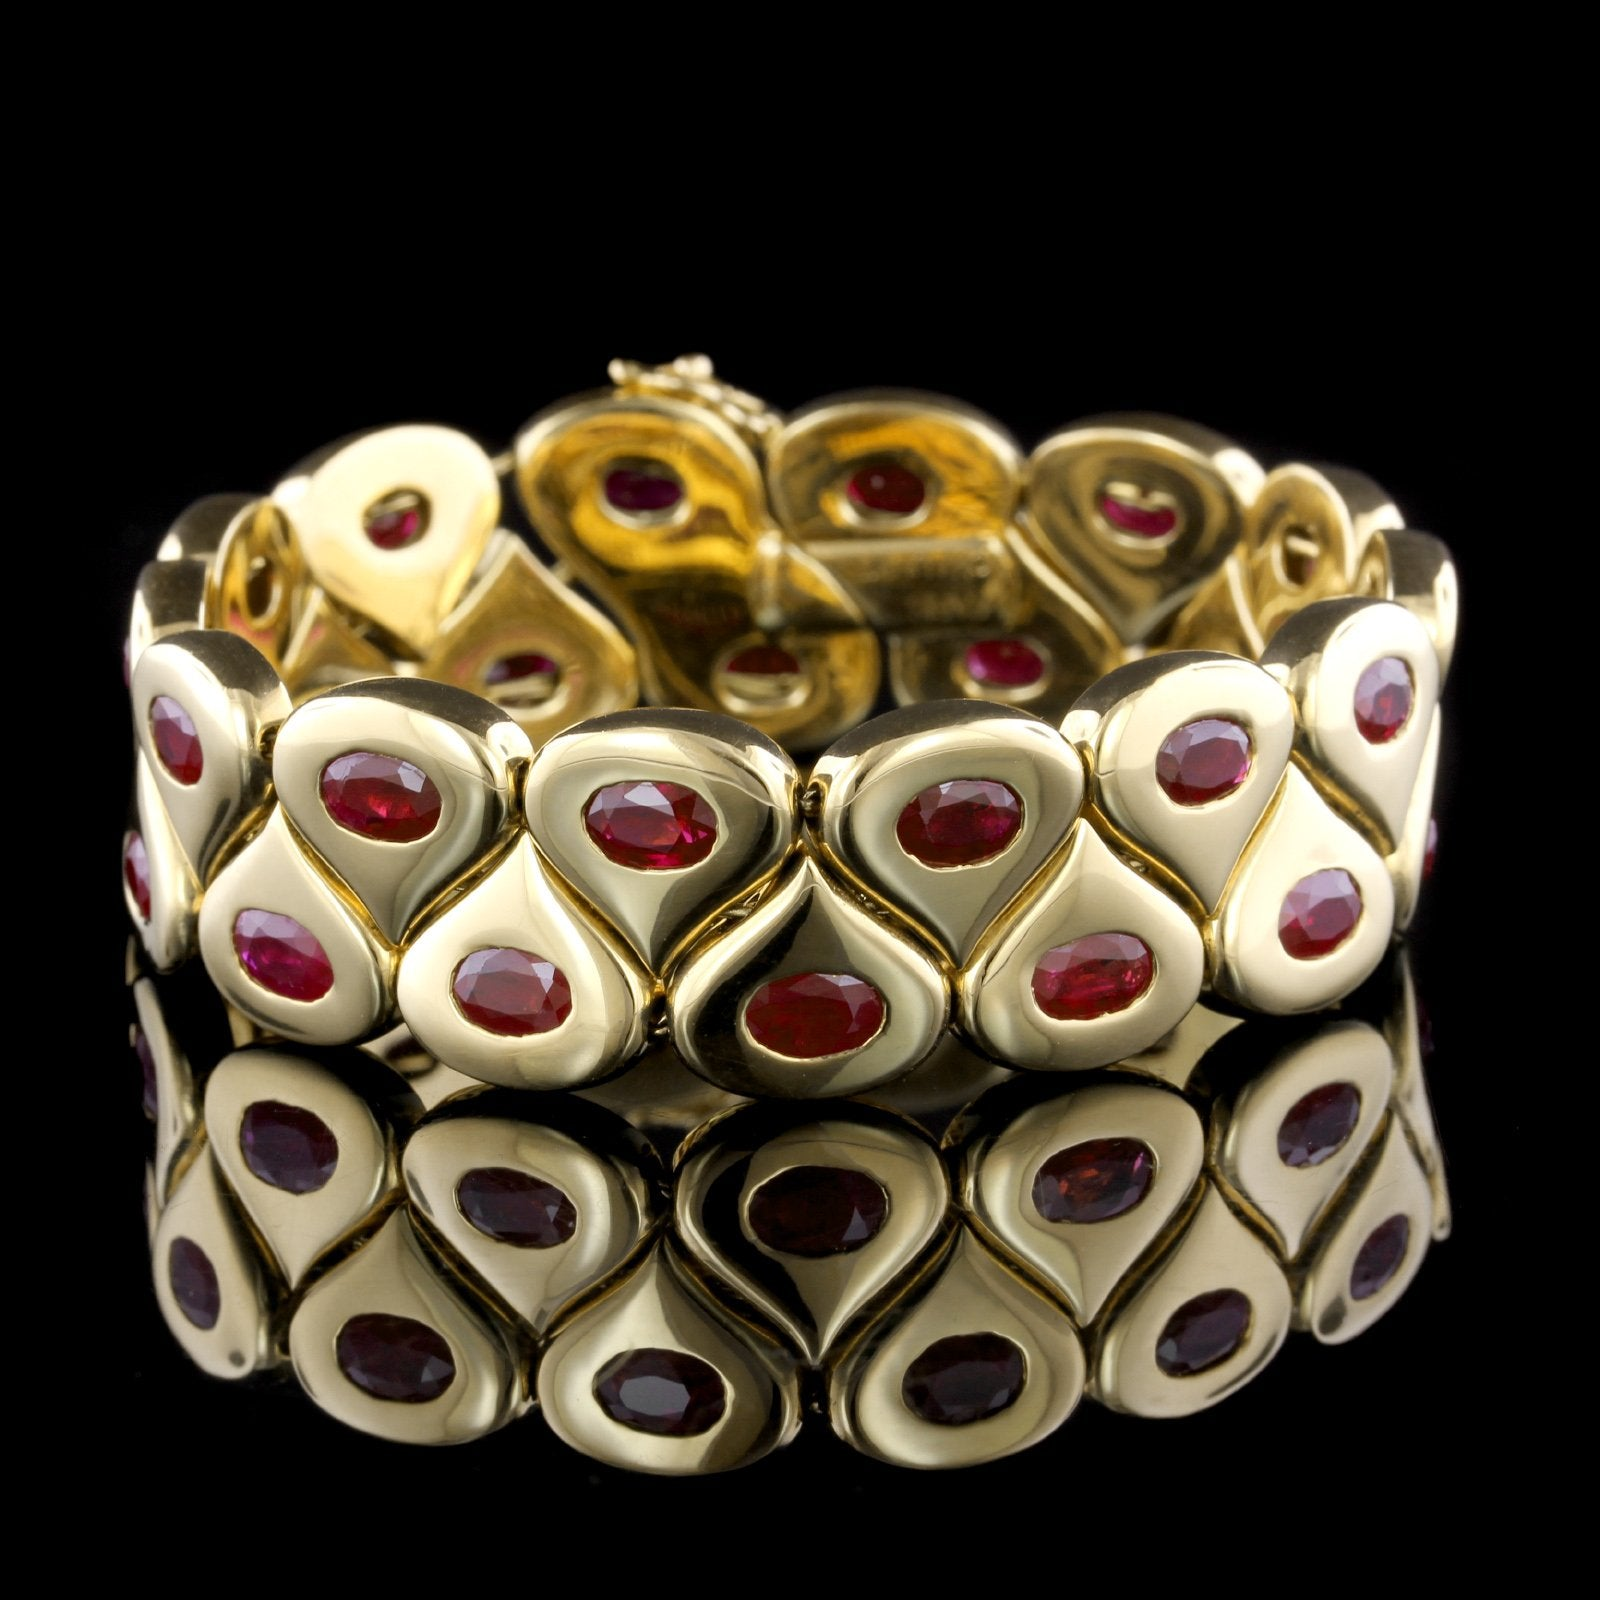 Chaumet 18K Yellow Gold Estate Ruby Bracelet, Paris